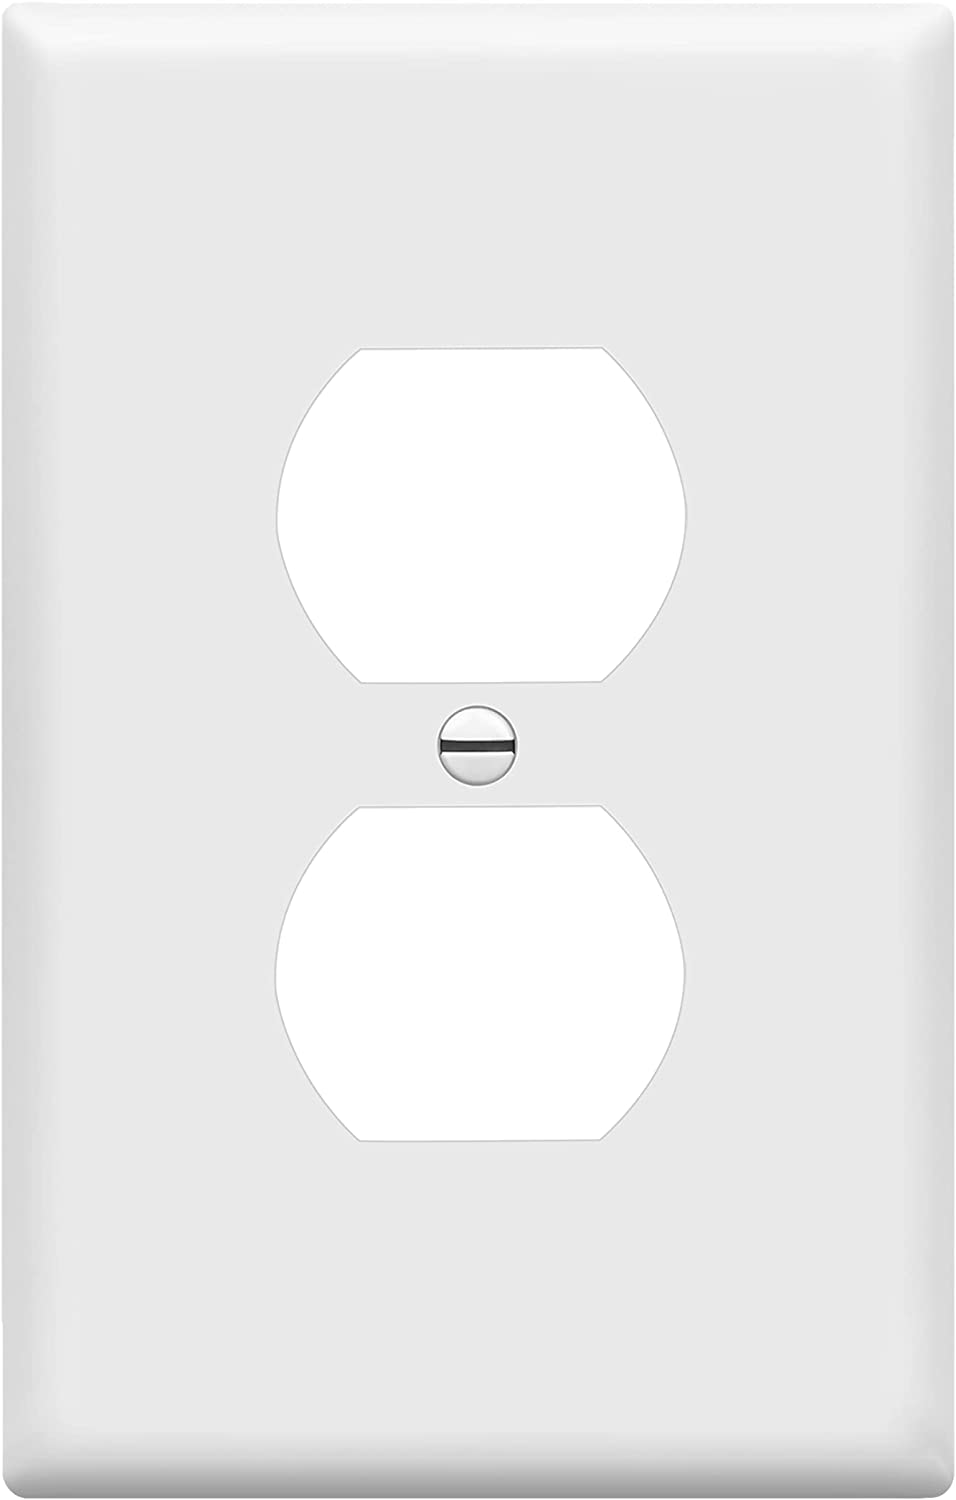 ENERLITES Brand Cheap Sale Venue Duplex Max 74% OFF Receptacle Outlet Plate Wall Electrical